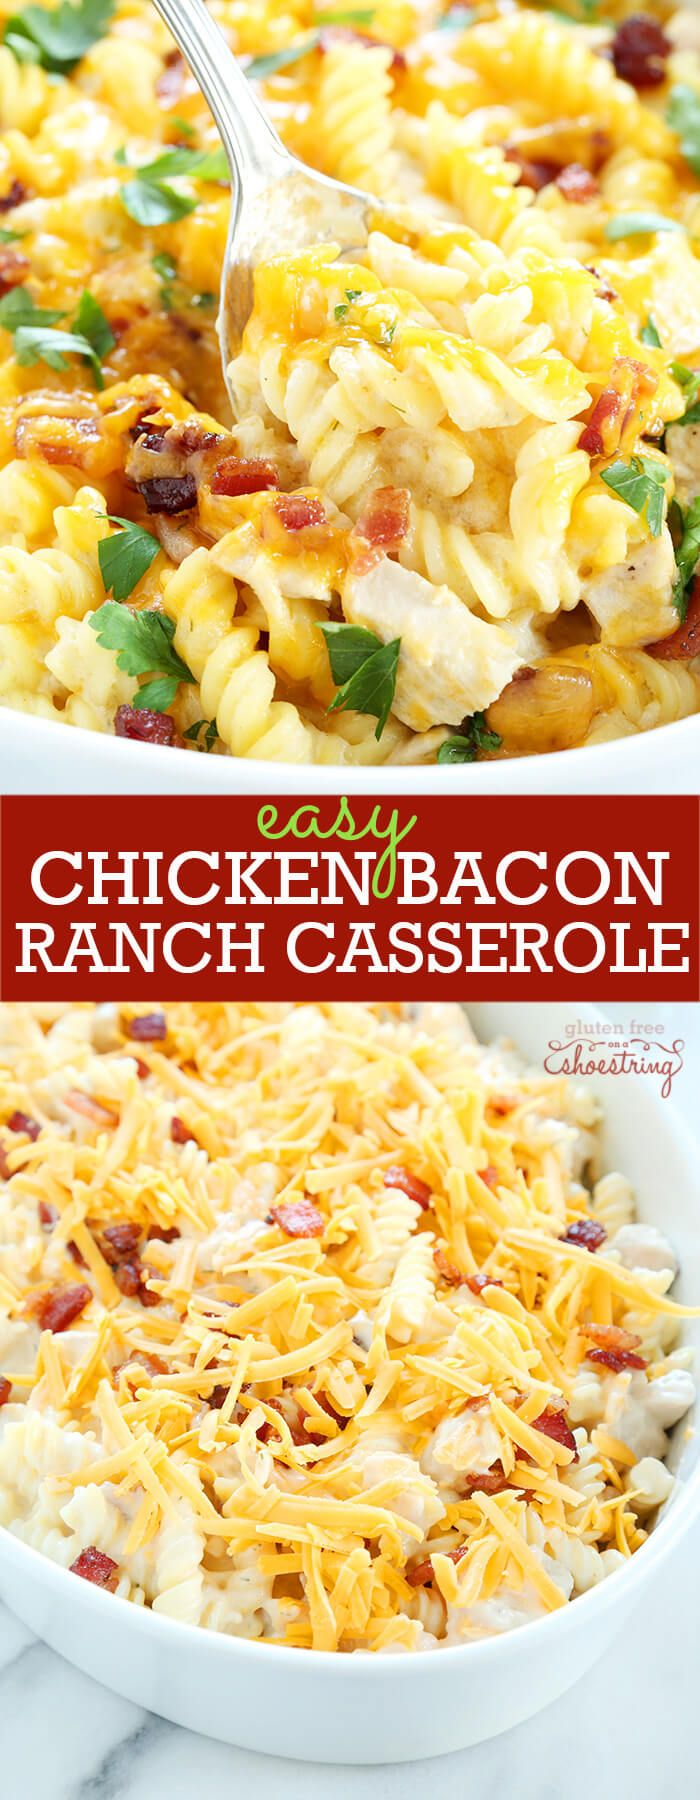 With an easy ranch cream sauce, bacon and all the right spices. This gluten free chicken bacon ranch casserole is the perfect comfort food.